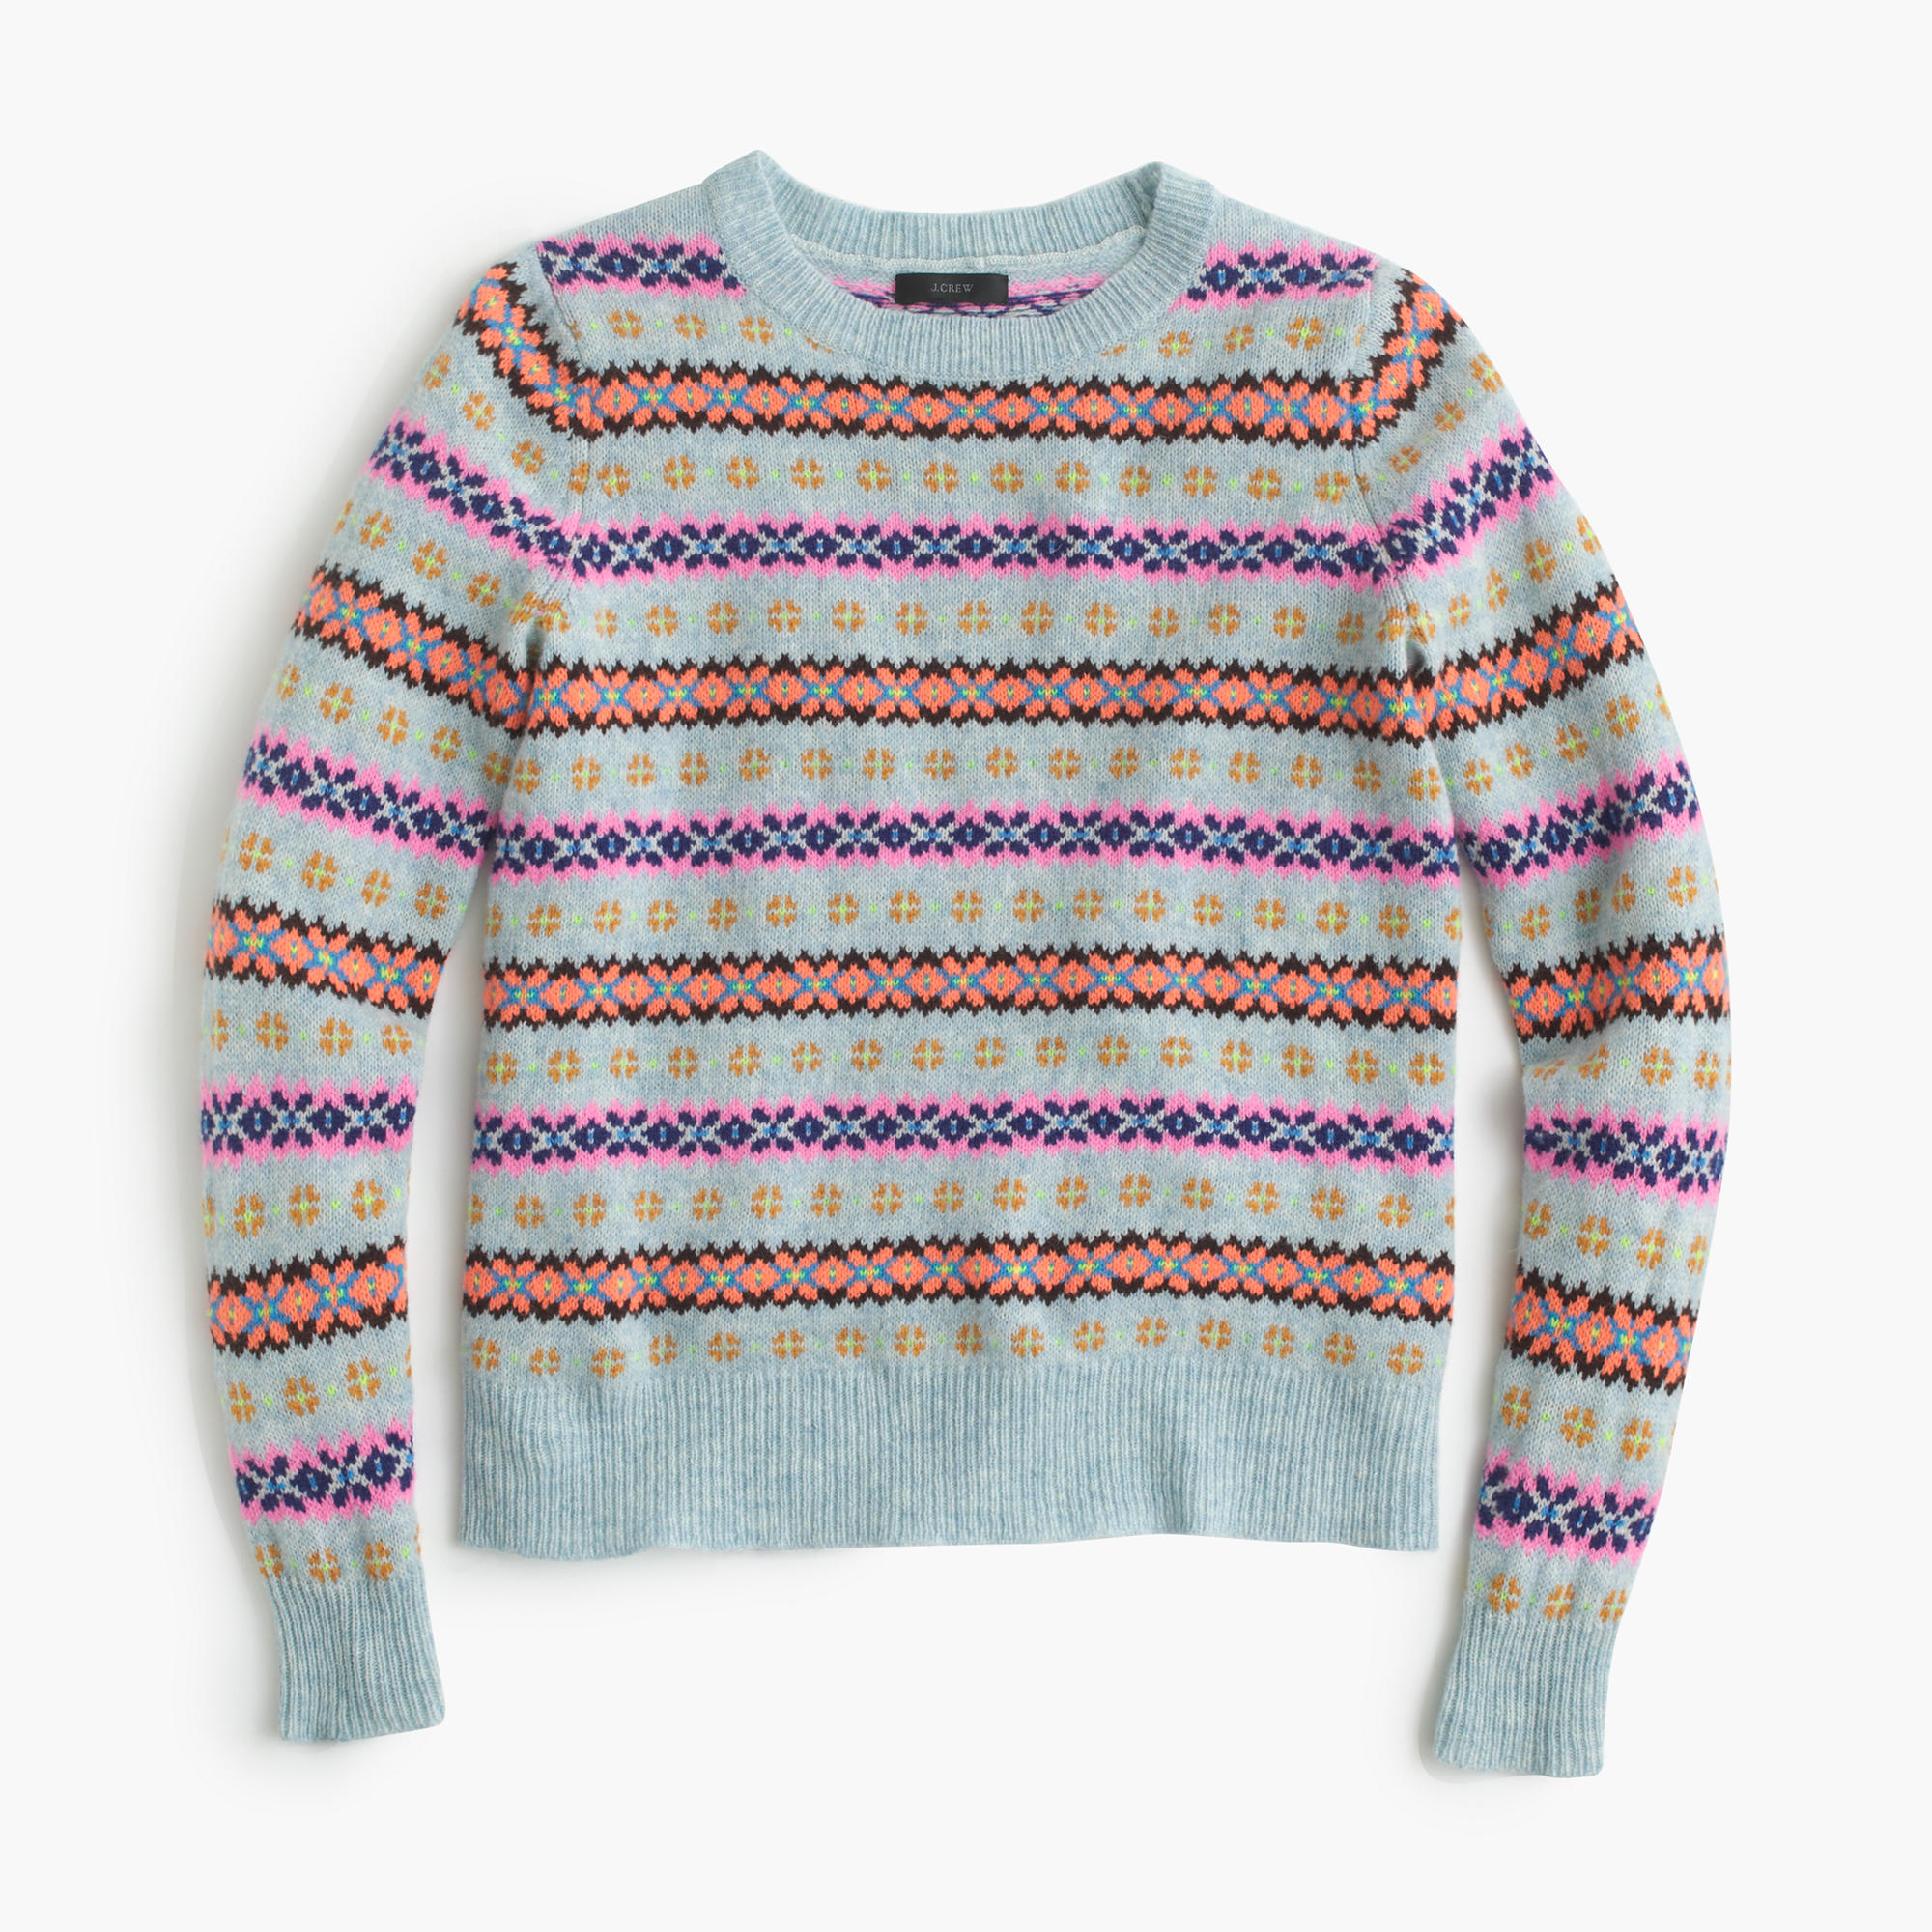 Find great deals on eBay for fair isle sweater. Shop with confidence.